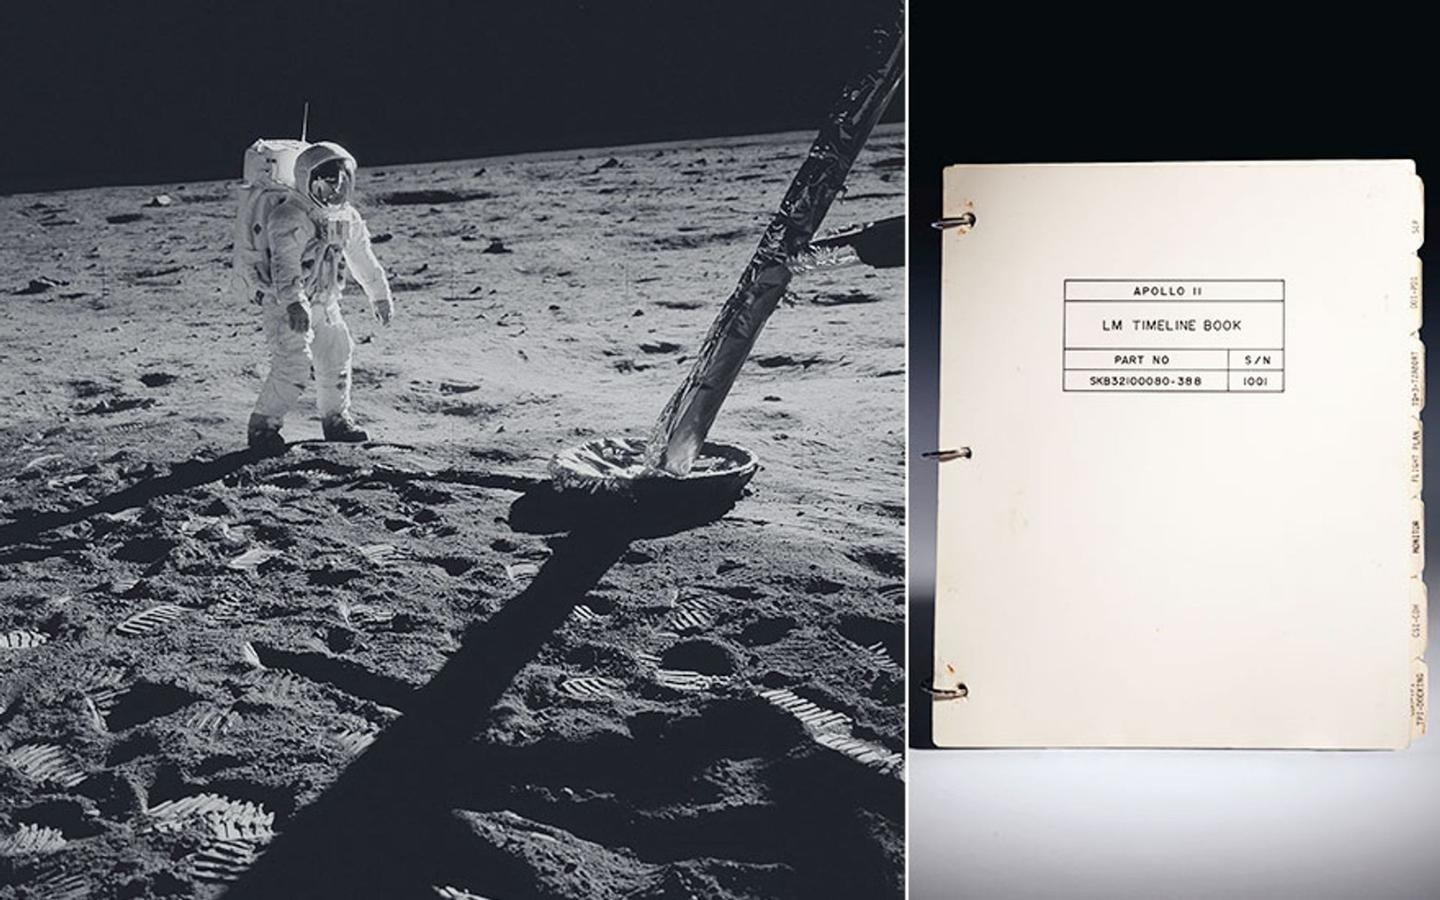 The cover of the Apollo 11 Lunar Module Timeline Book – to be auctioned almost 50 years to the day after the historic landing on the Moon